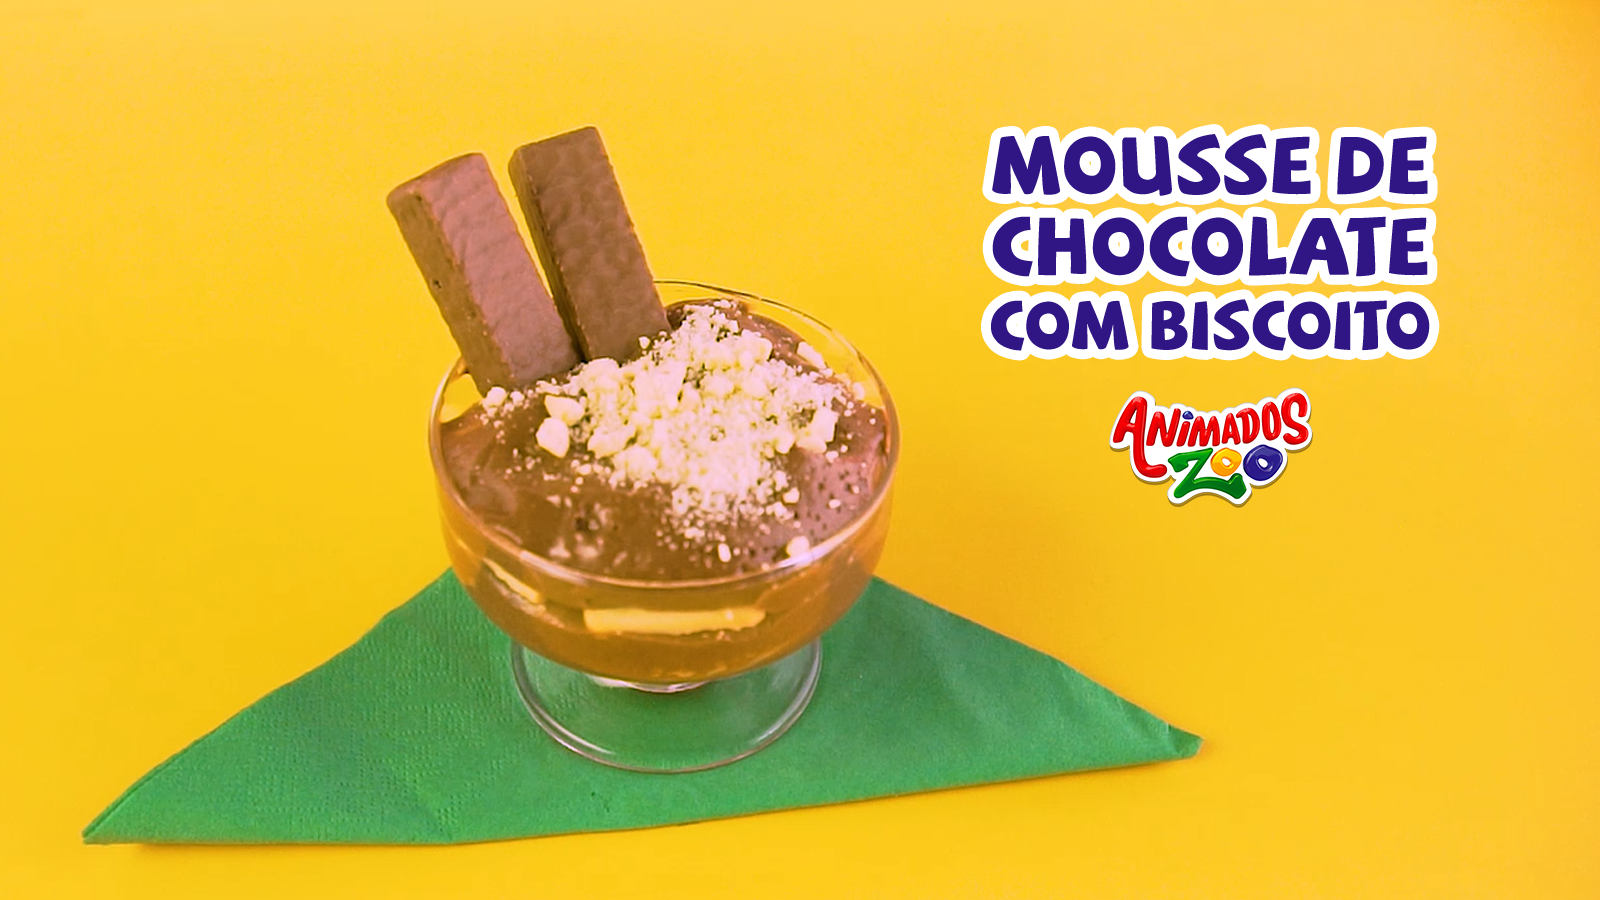 Mousse de Chocolate com Biscoito